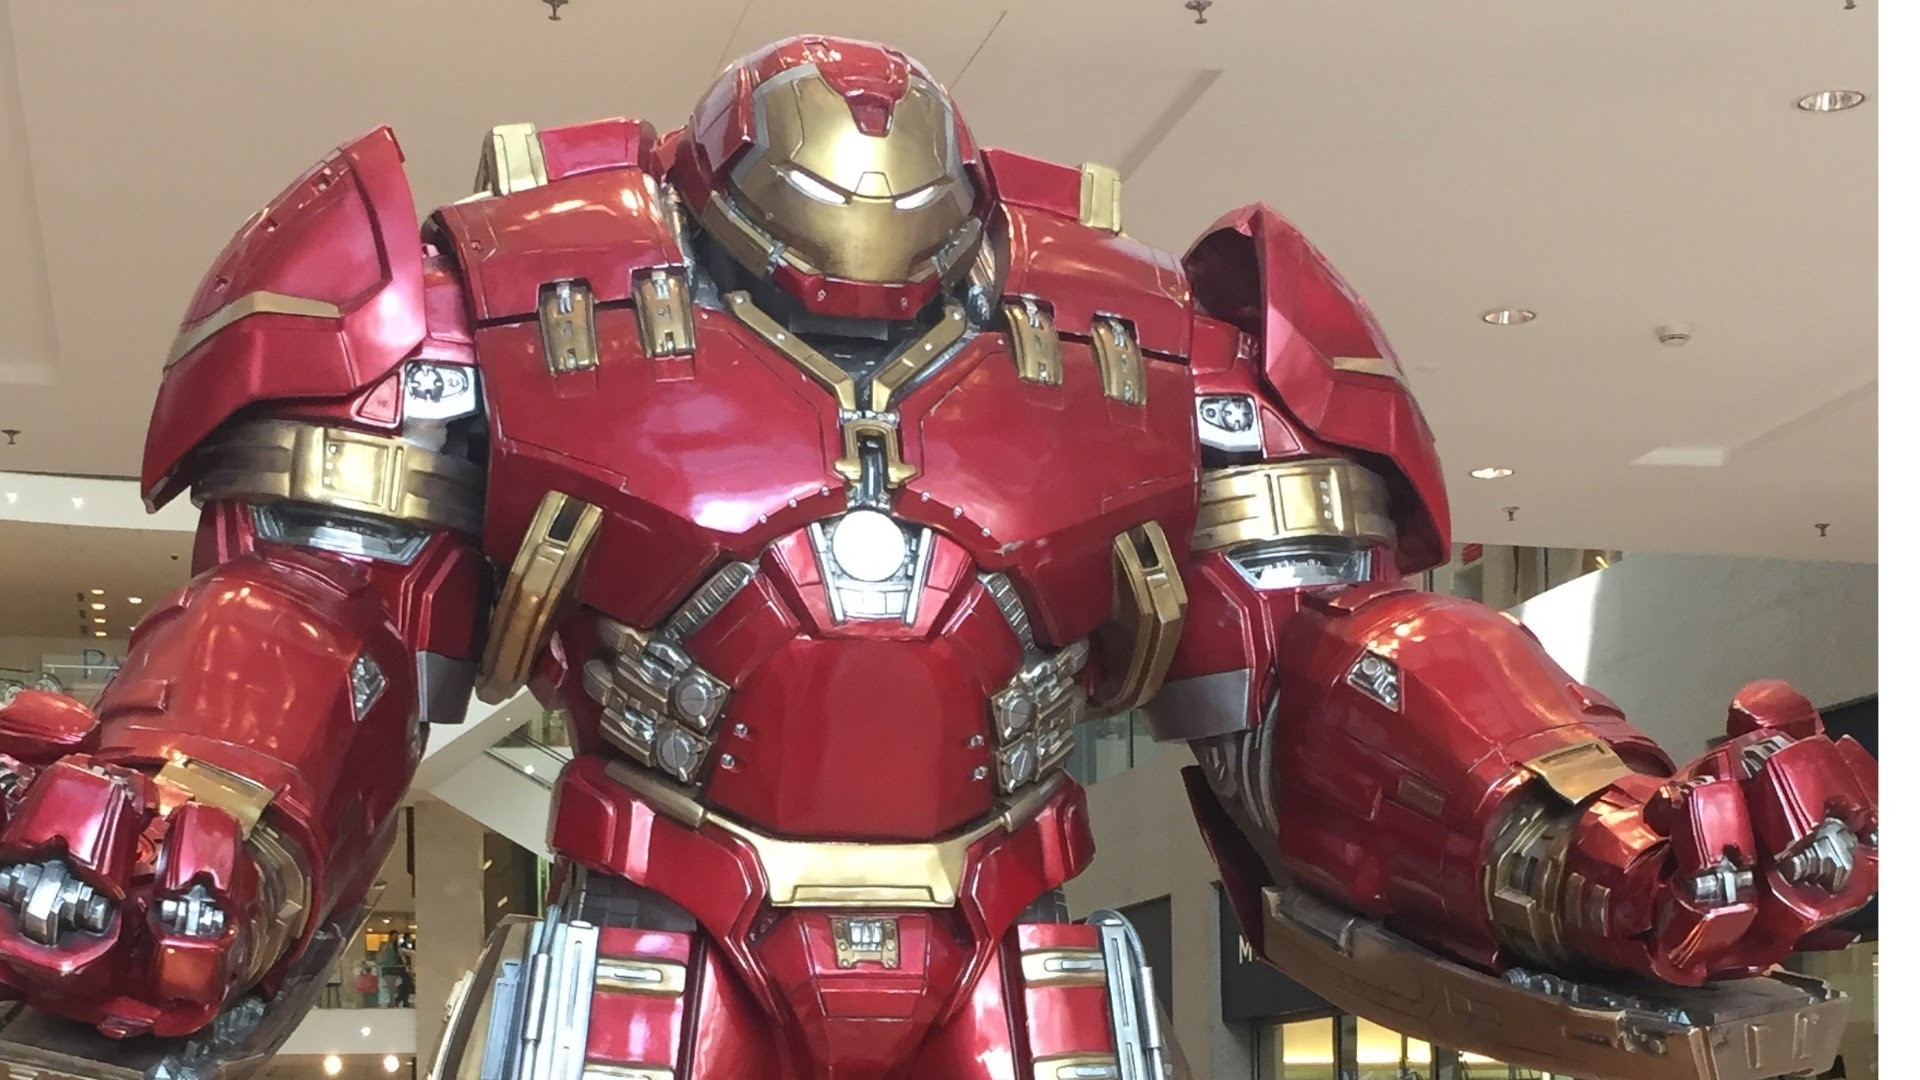 1920x1080 Iron Man From The Avengers Age of Ultron in Hulkbuster Armour